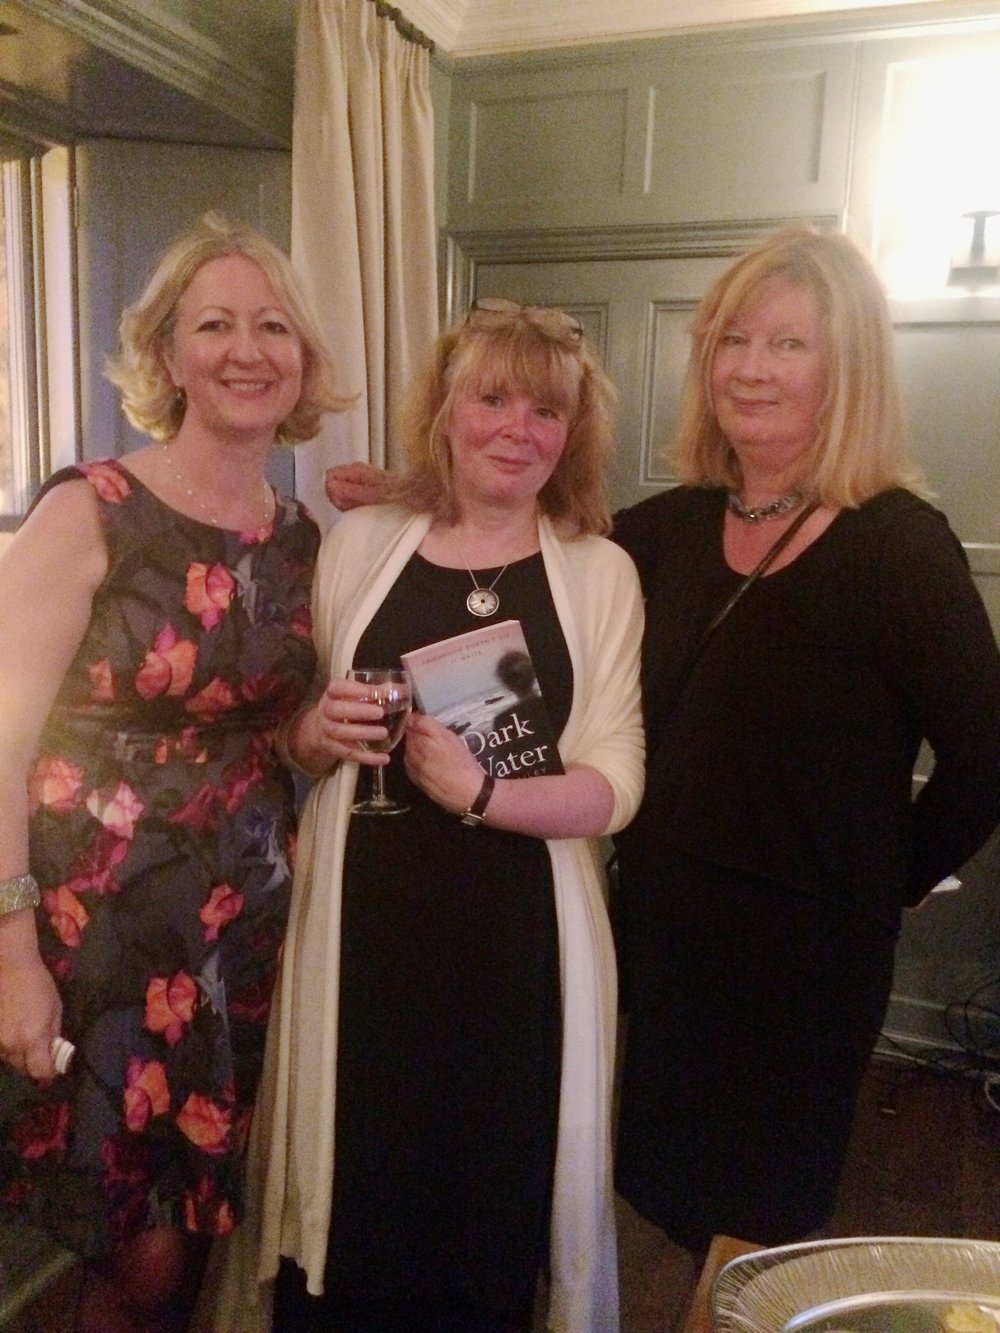 Jacqui Lofthouse, Founder of Nightingale with Sara Bailey and Stephanie Zia